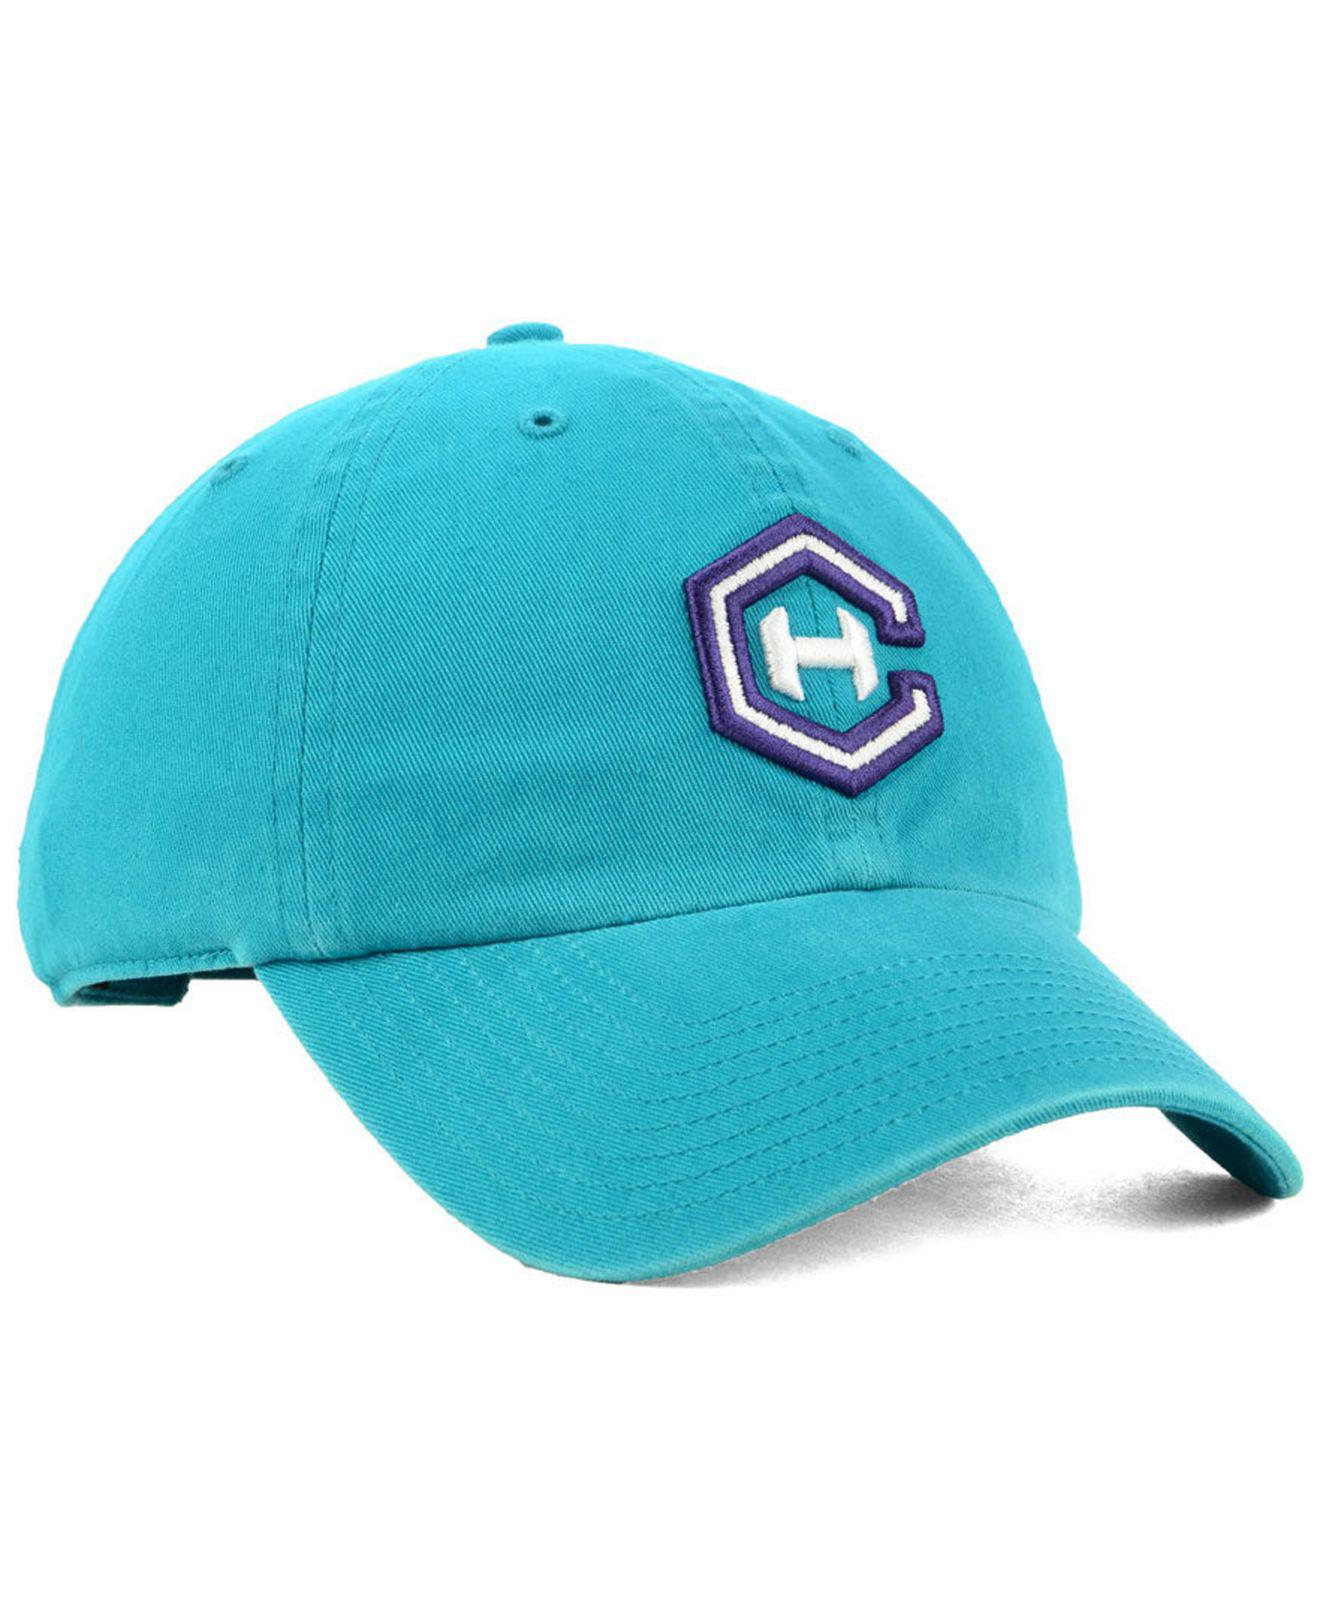 0823df1d90cc20 ... promo code for 47 brand blue charlotte hornets mash up clean up cap for  men lyst